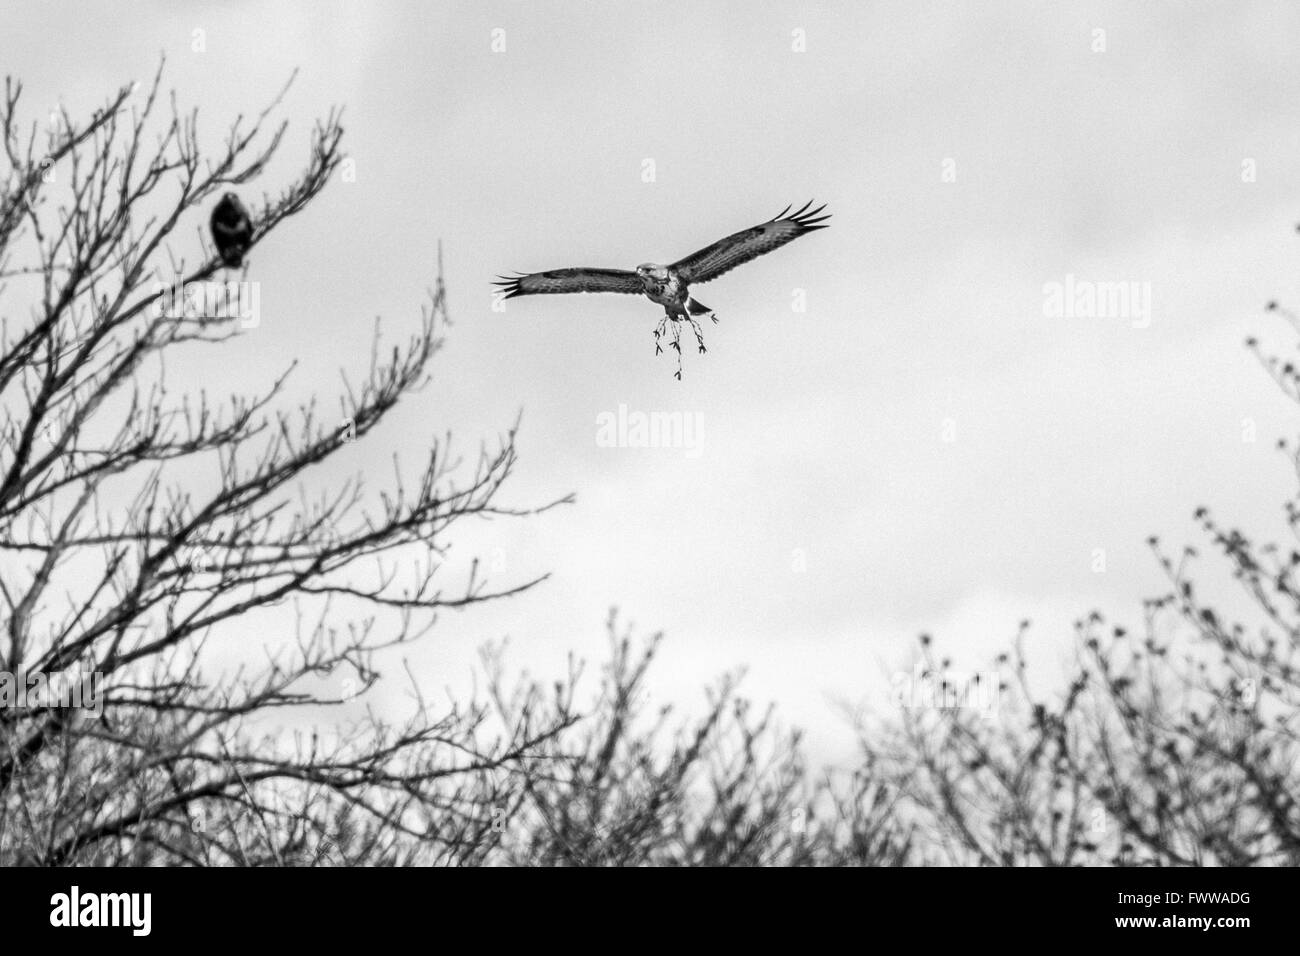 Common buzzard (Buteo buteo) presenting 'gifts' for his potential mate - although it looks like mistletoe, - Stock Image